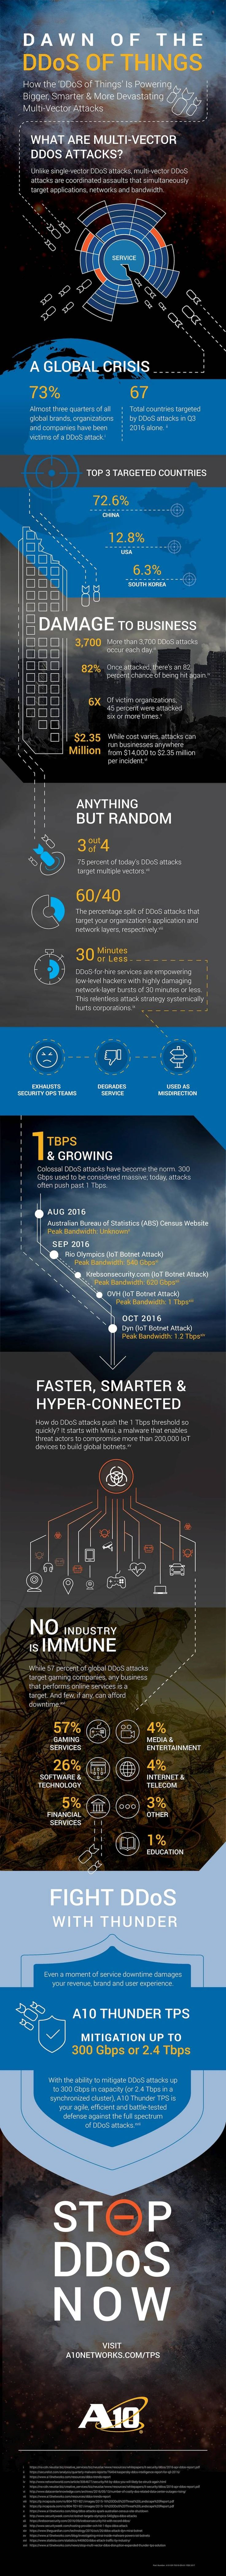 Dawn of the DDoS of Things [Infographic]